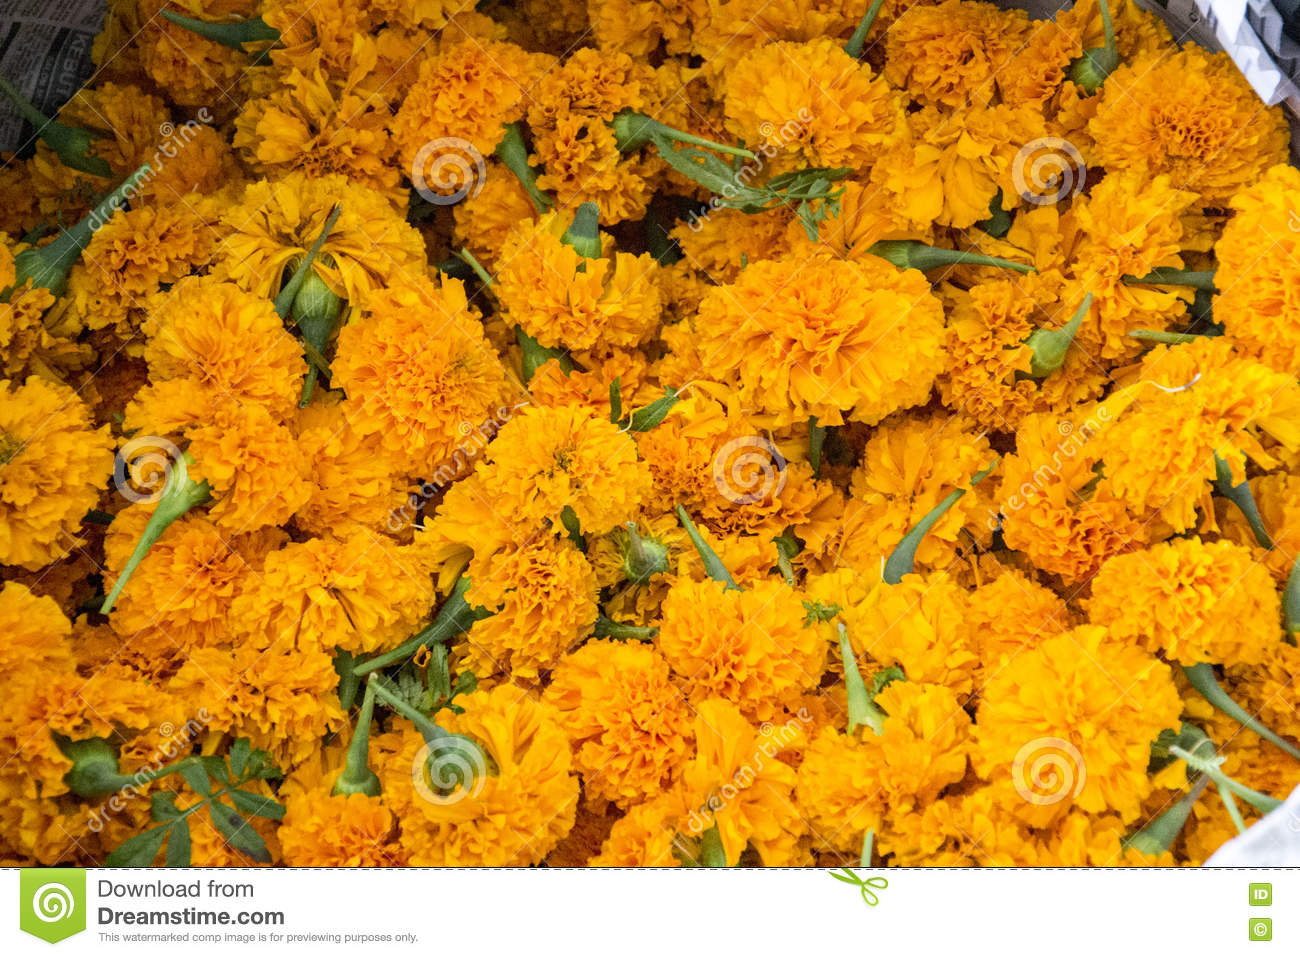 0b62c2e1b51 Marigold Heads For Sale Used For Hindu Puja/holy Ceremonies Stock ...